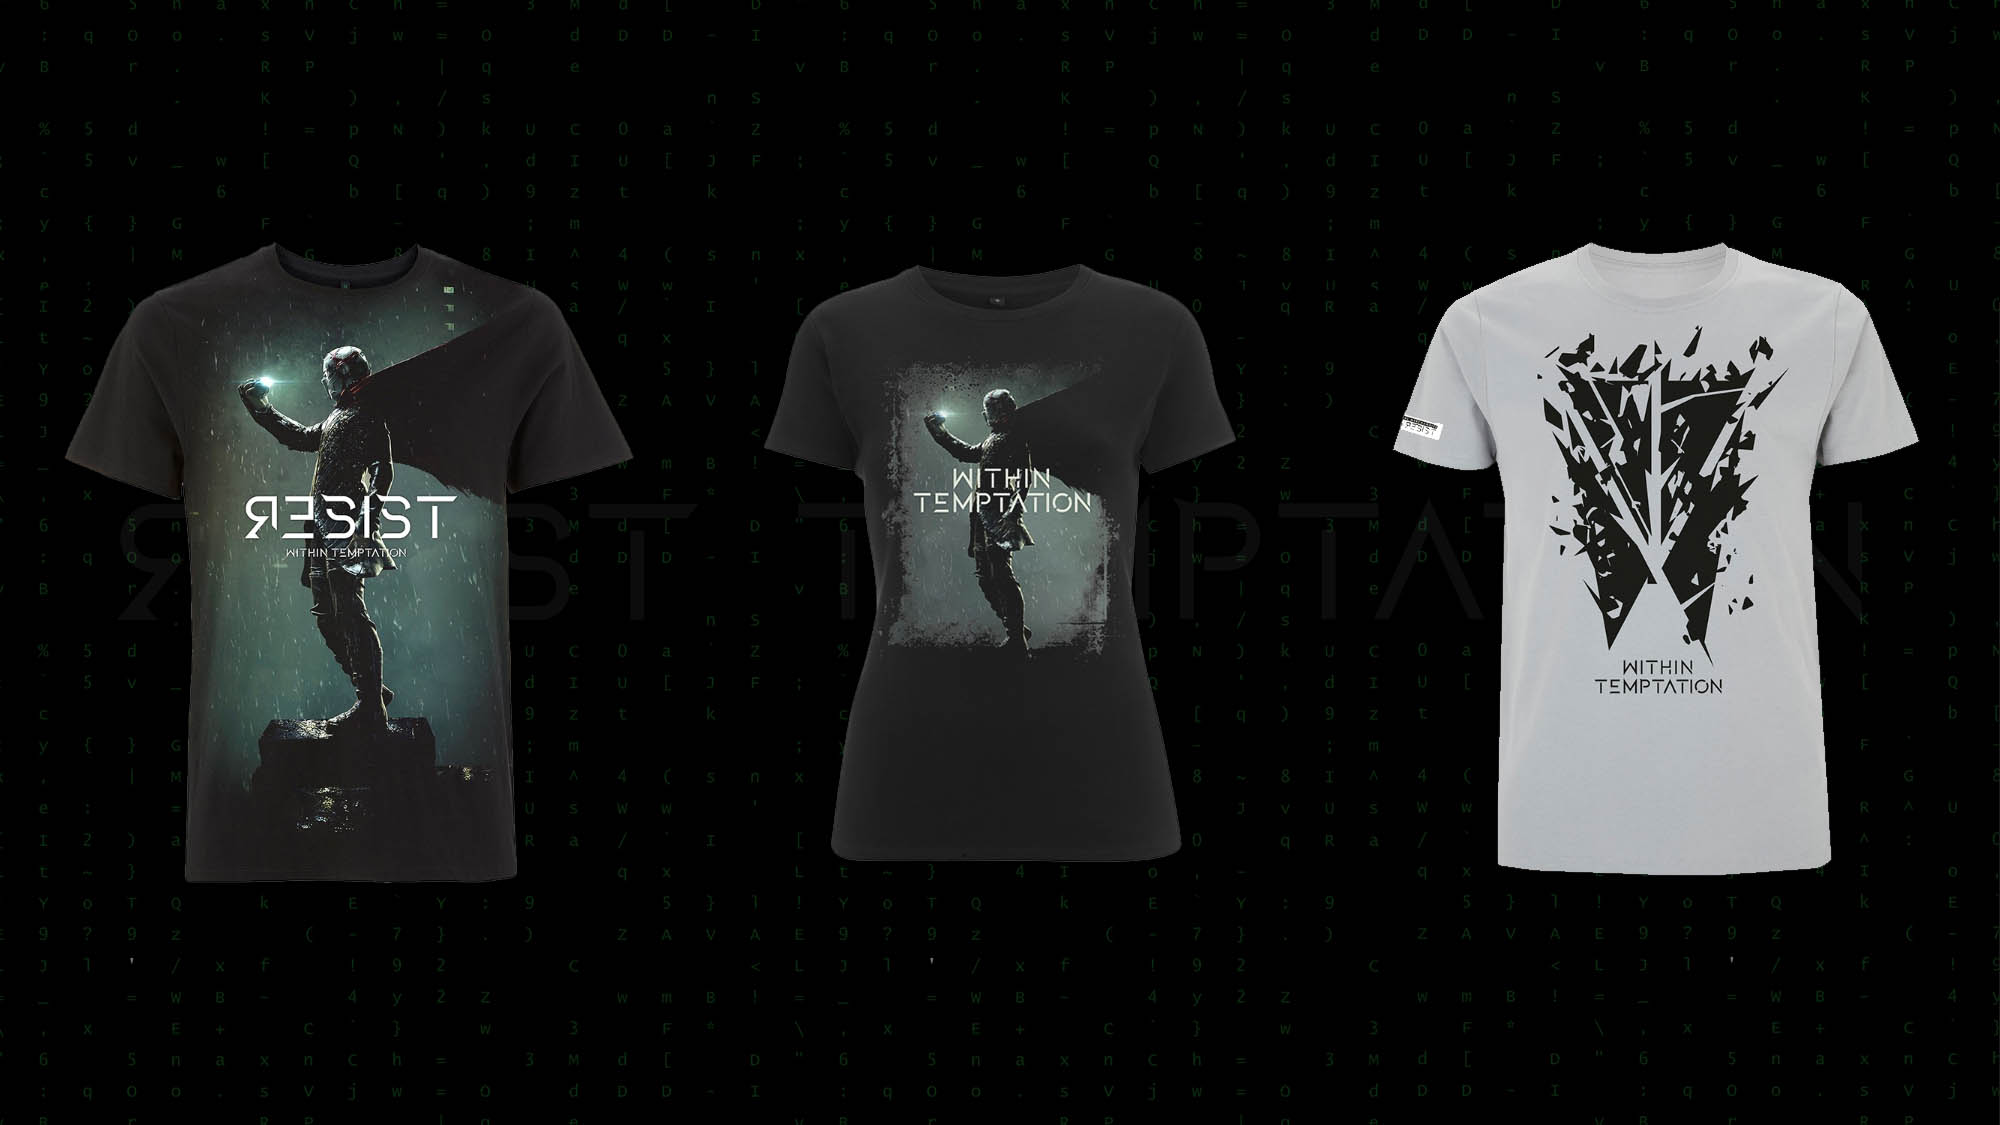 New Within Temptation RESIST Merchandise 2018